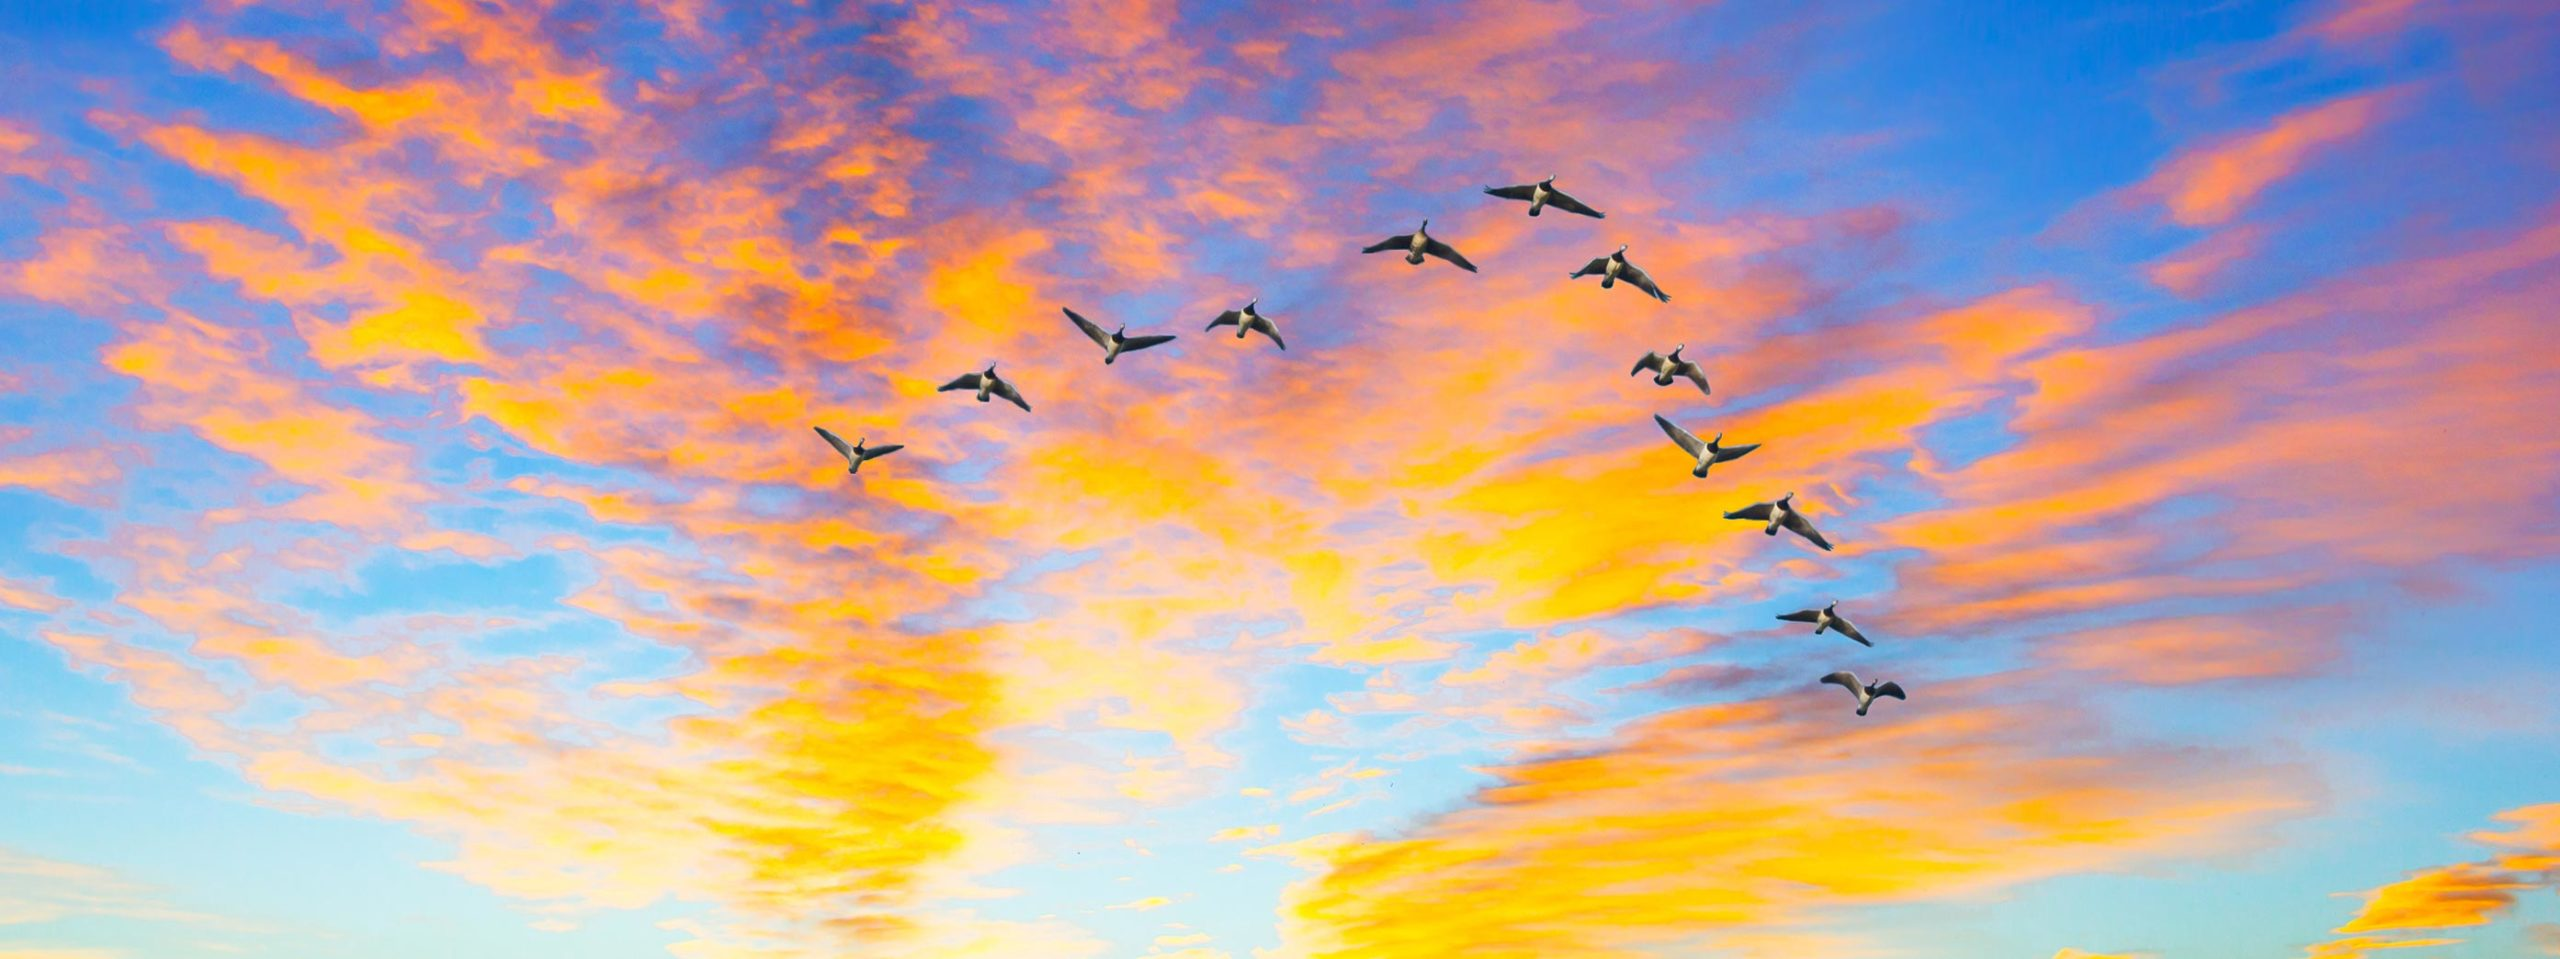 geese flying in formation at sunset